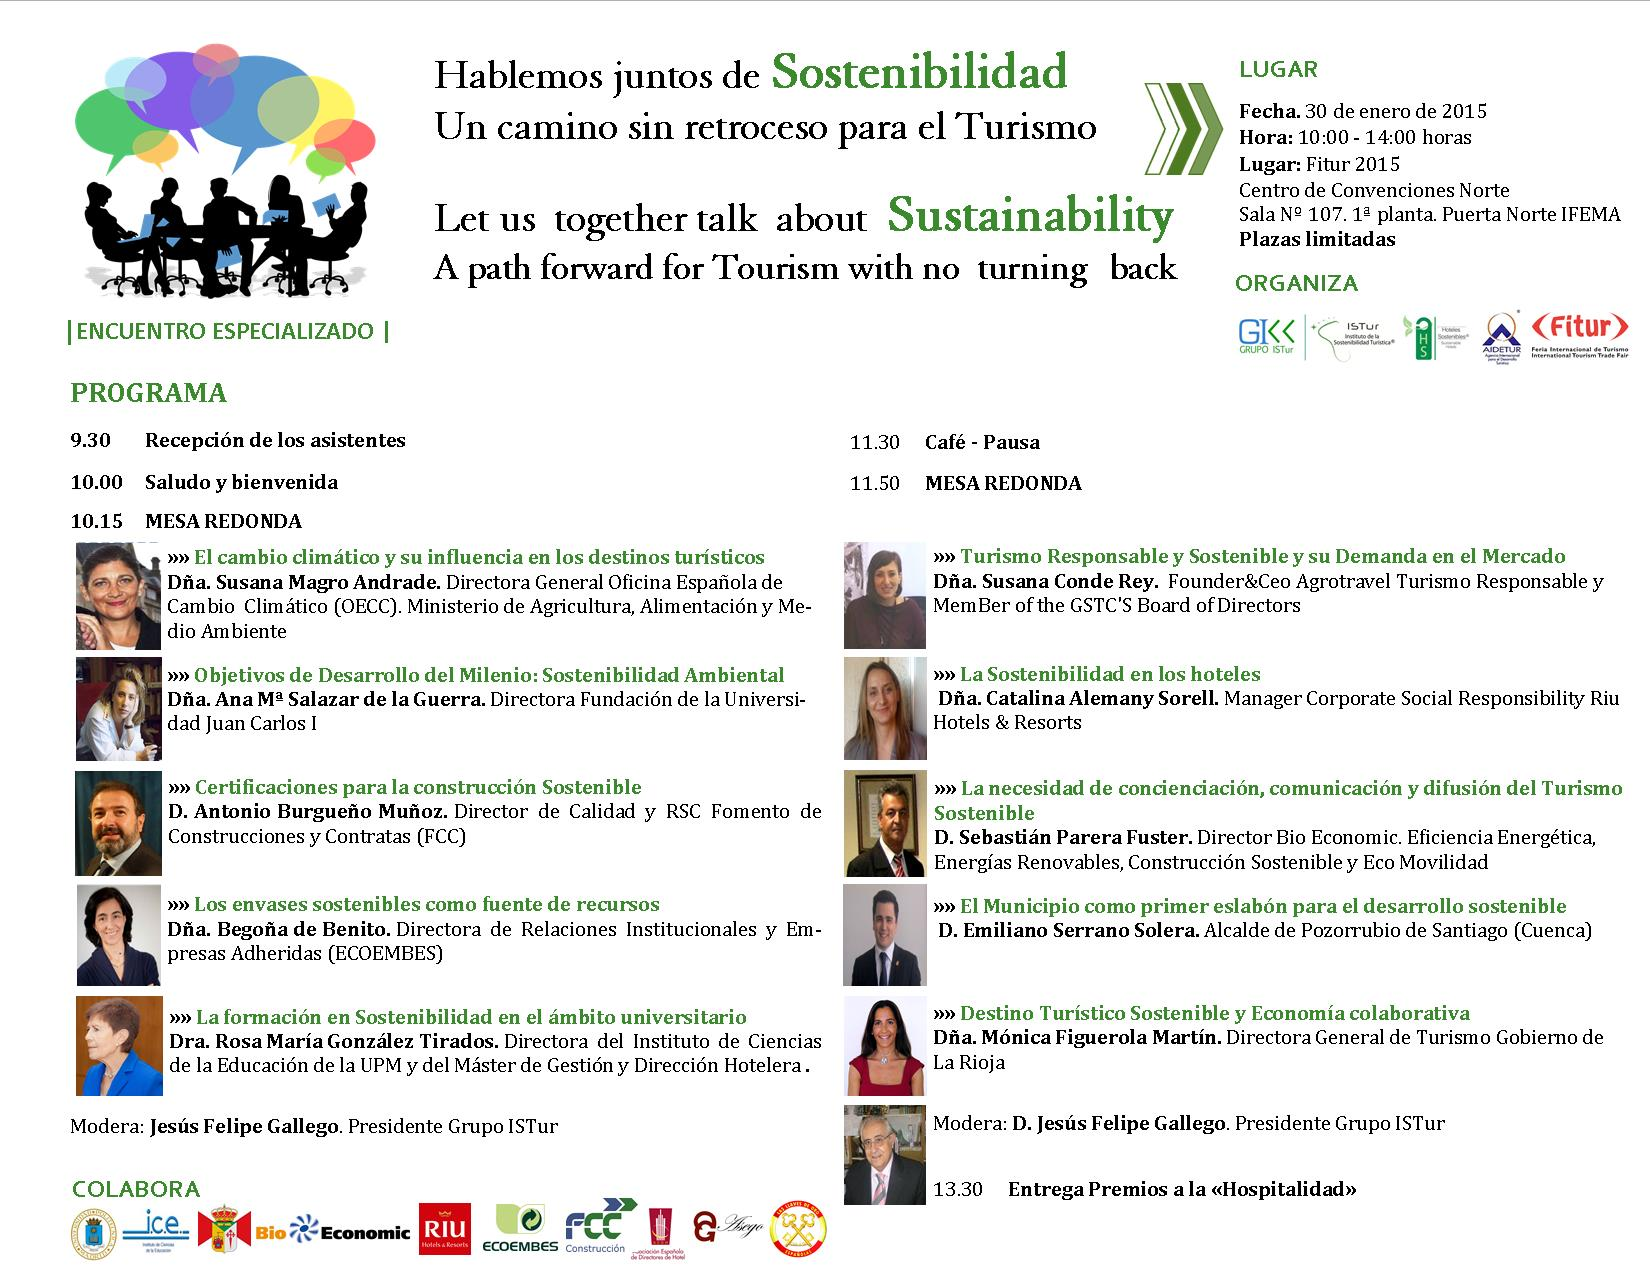 «Hablemos juntos de Sostenibilidad. Un camino sin retroceso para el Turismo» | «Let us together talk about Sustainability. A path forward for Tourism with no turning back»